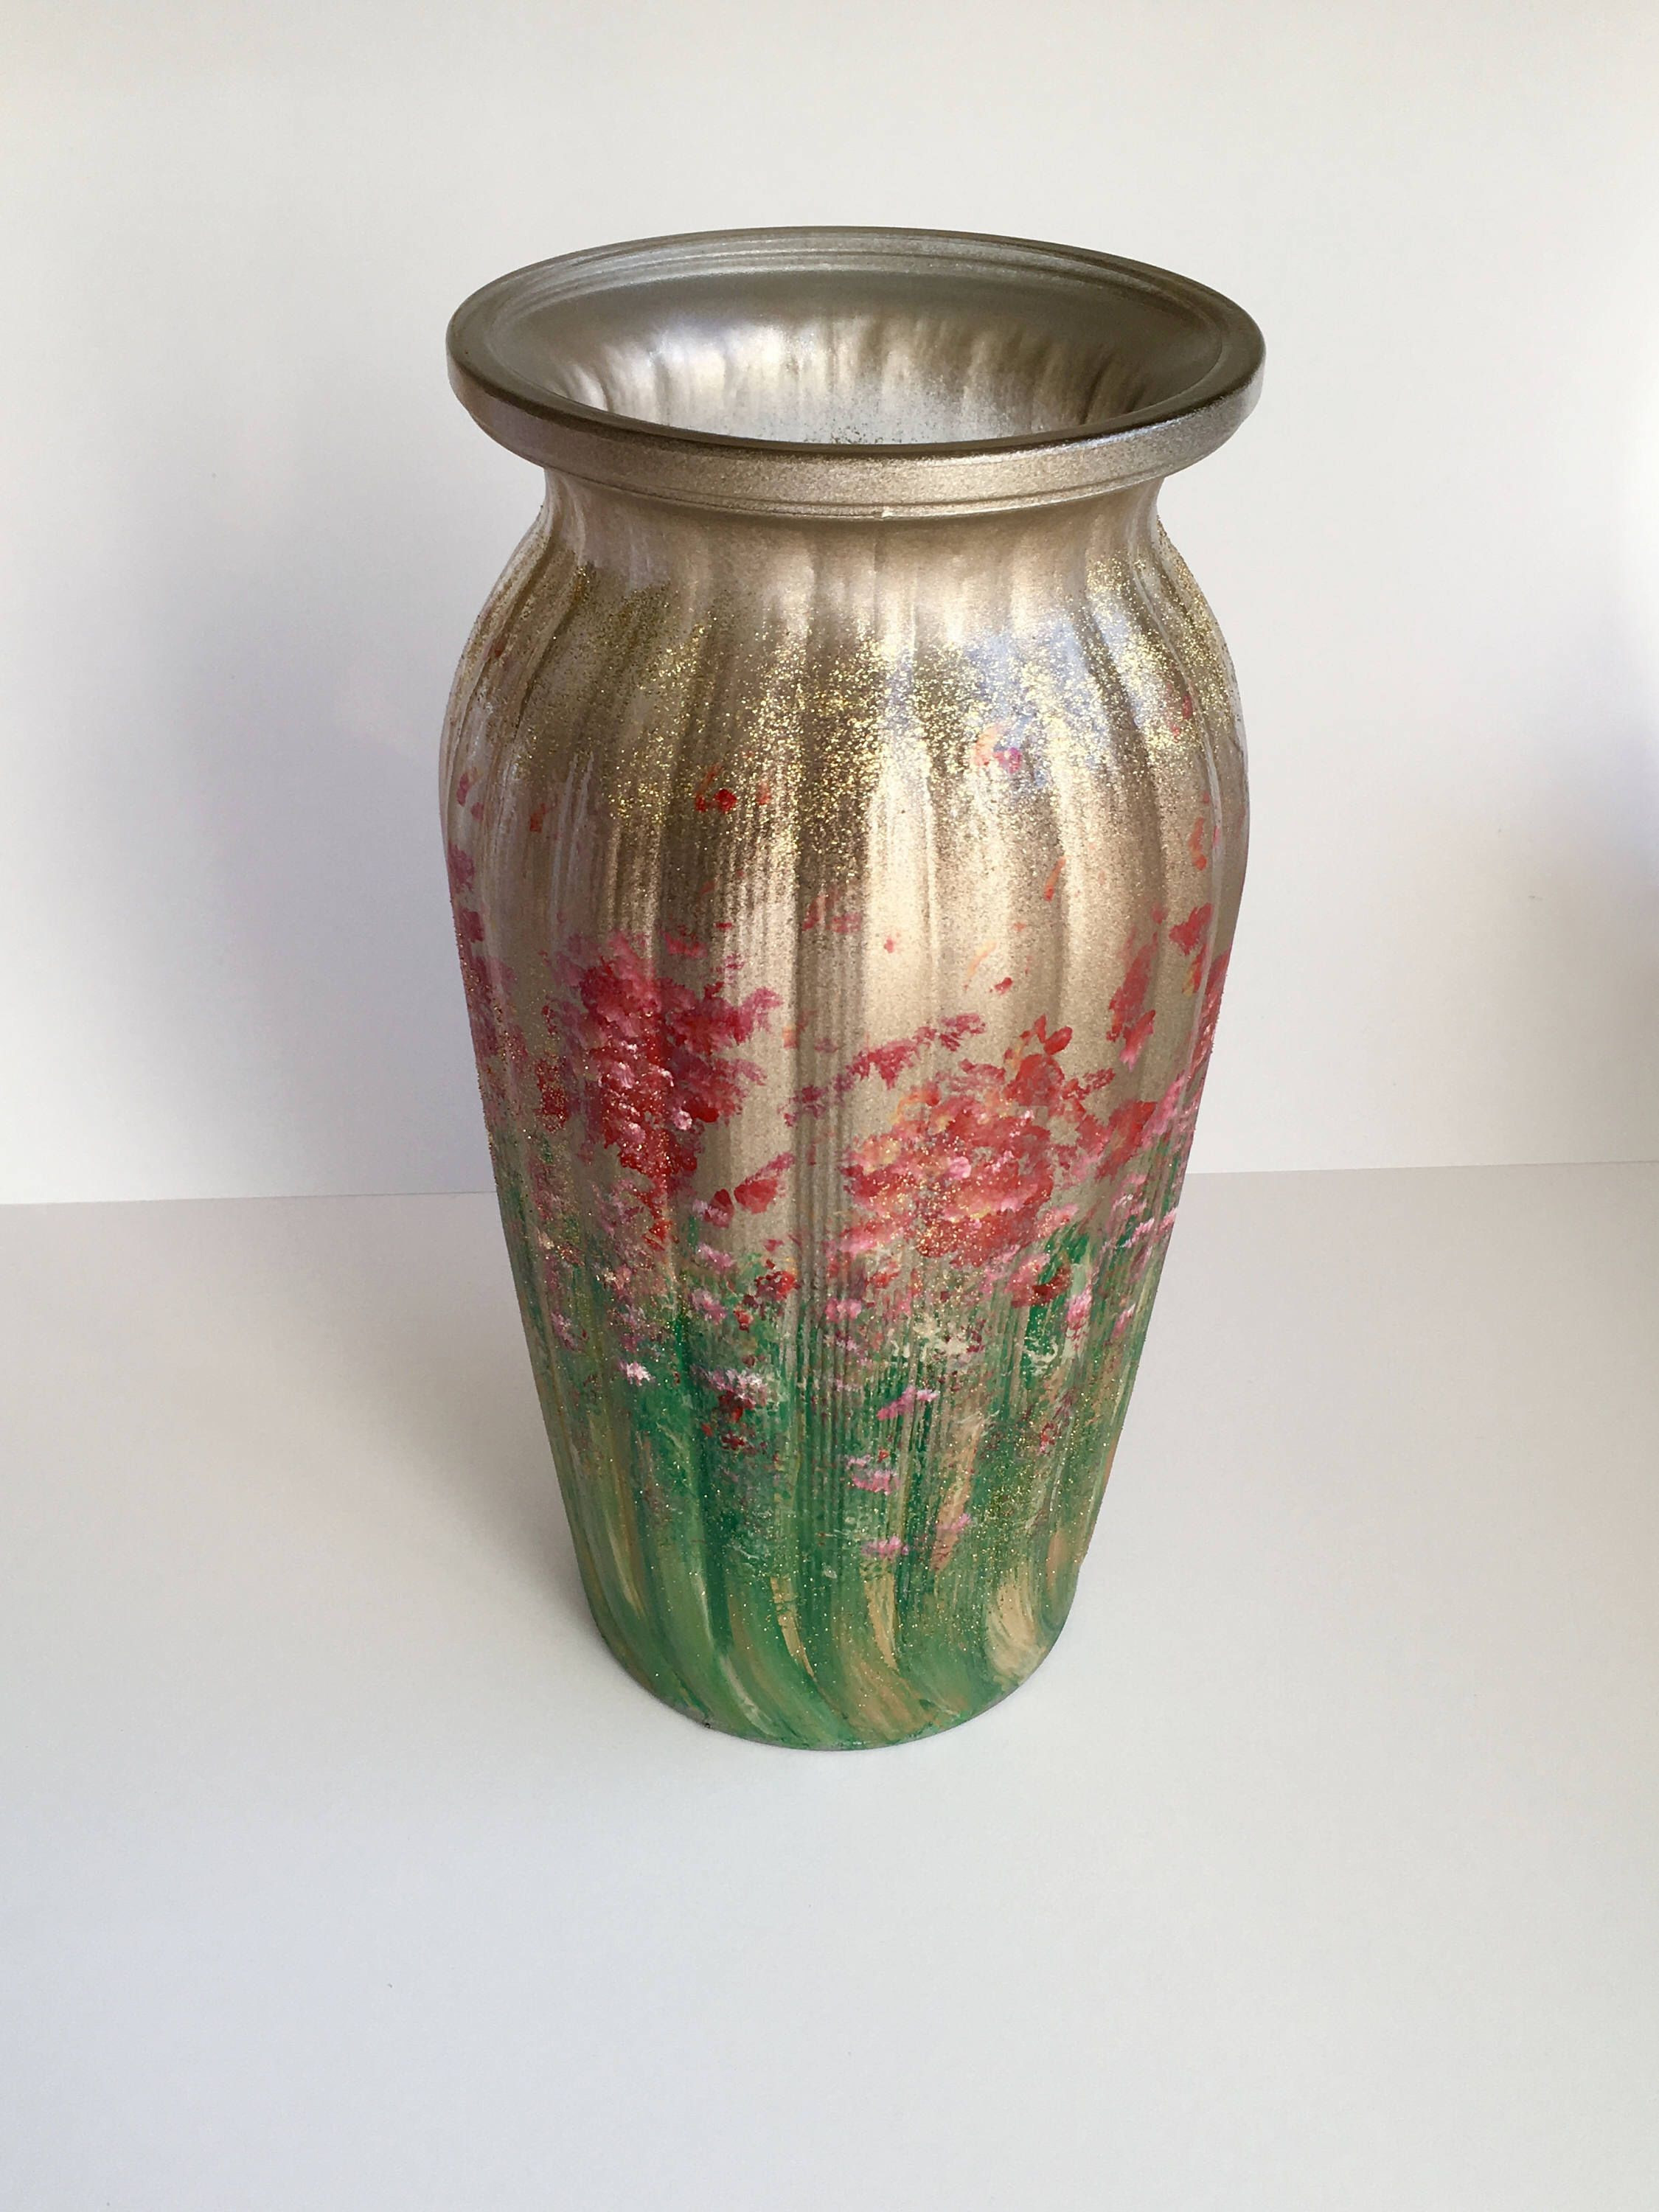 hand painted floor vase of glittering hand painted glass vase from old clear flower vase https within glittering hand painted glass vase from old clear flower vase https www